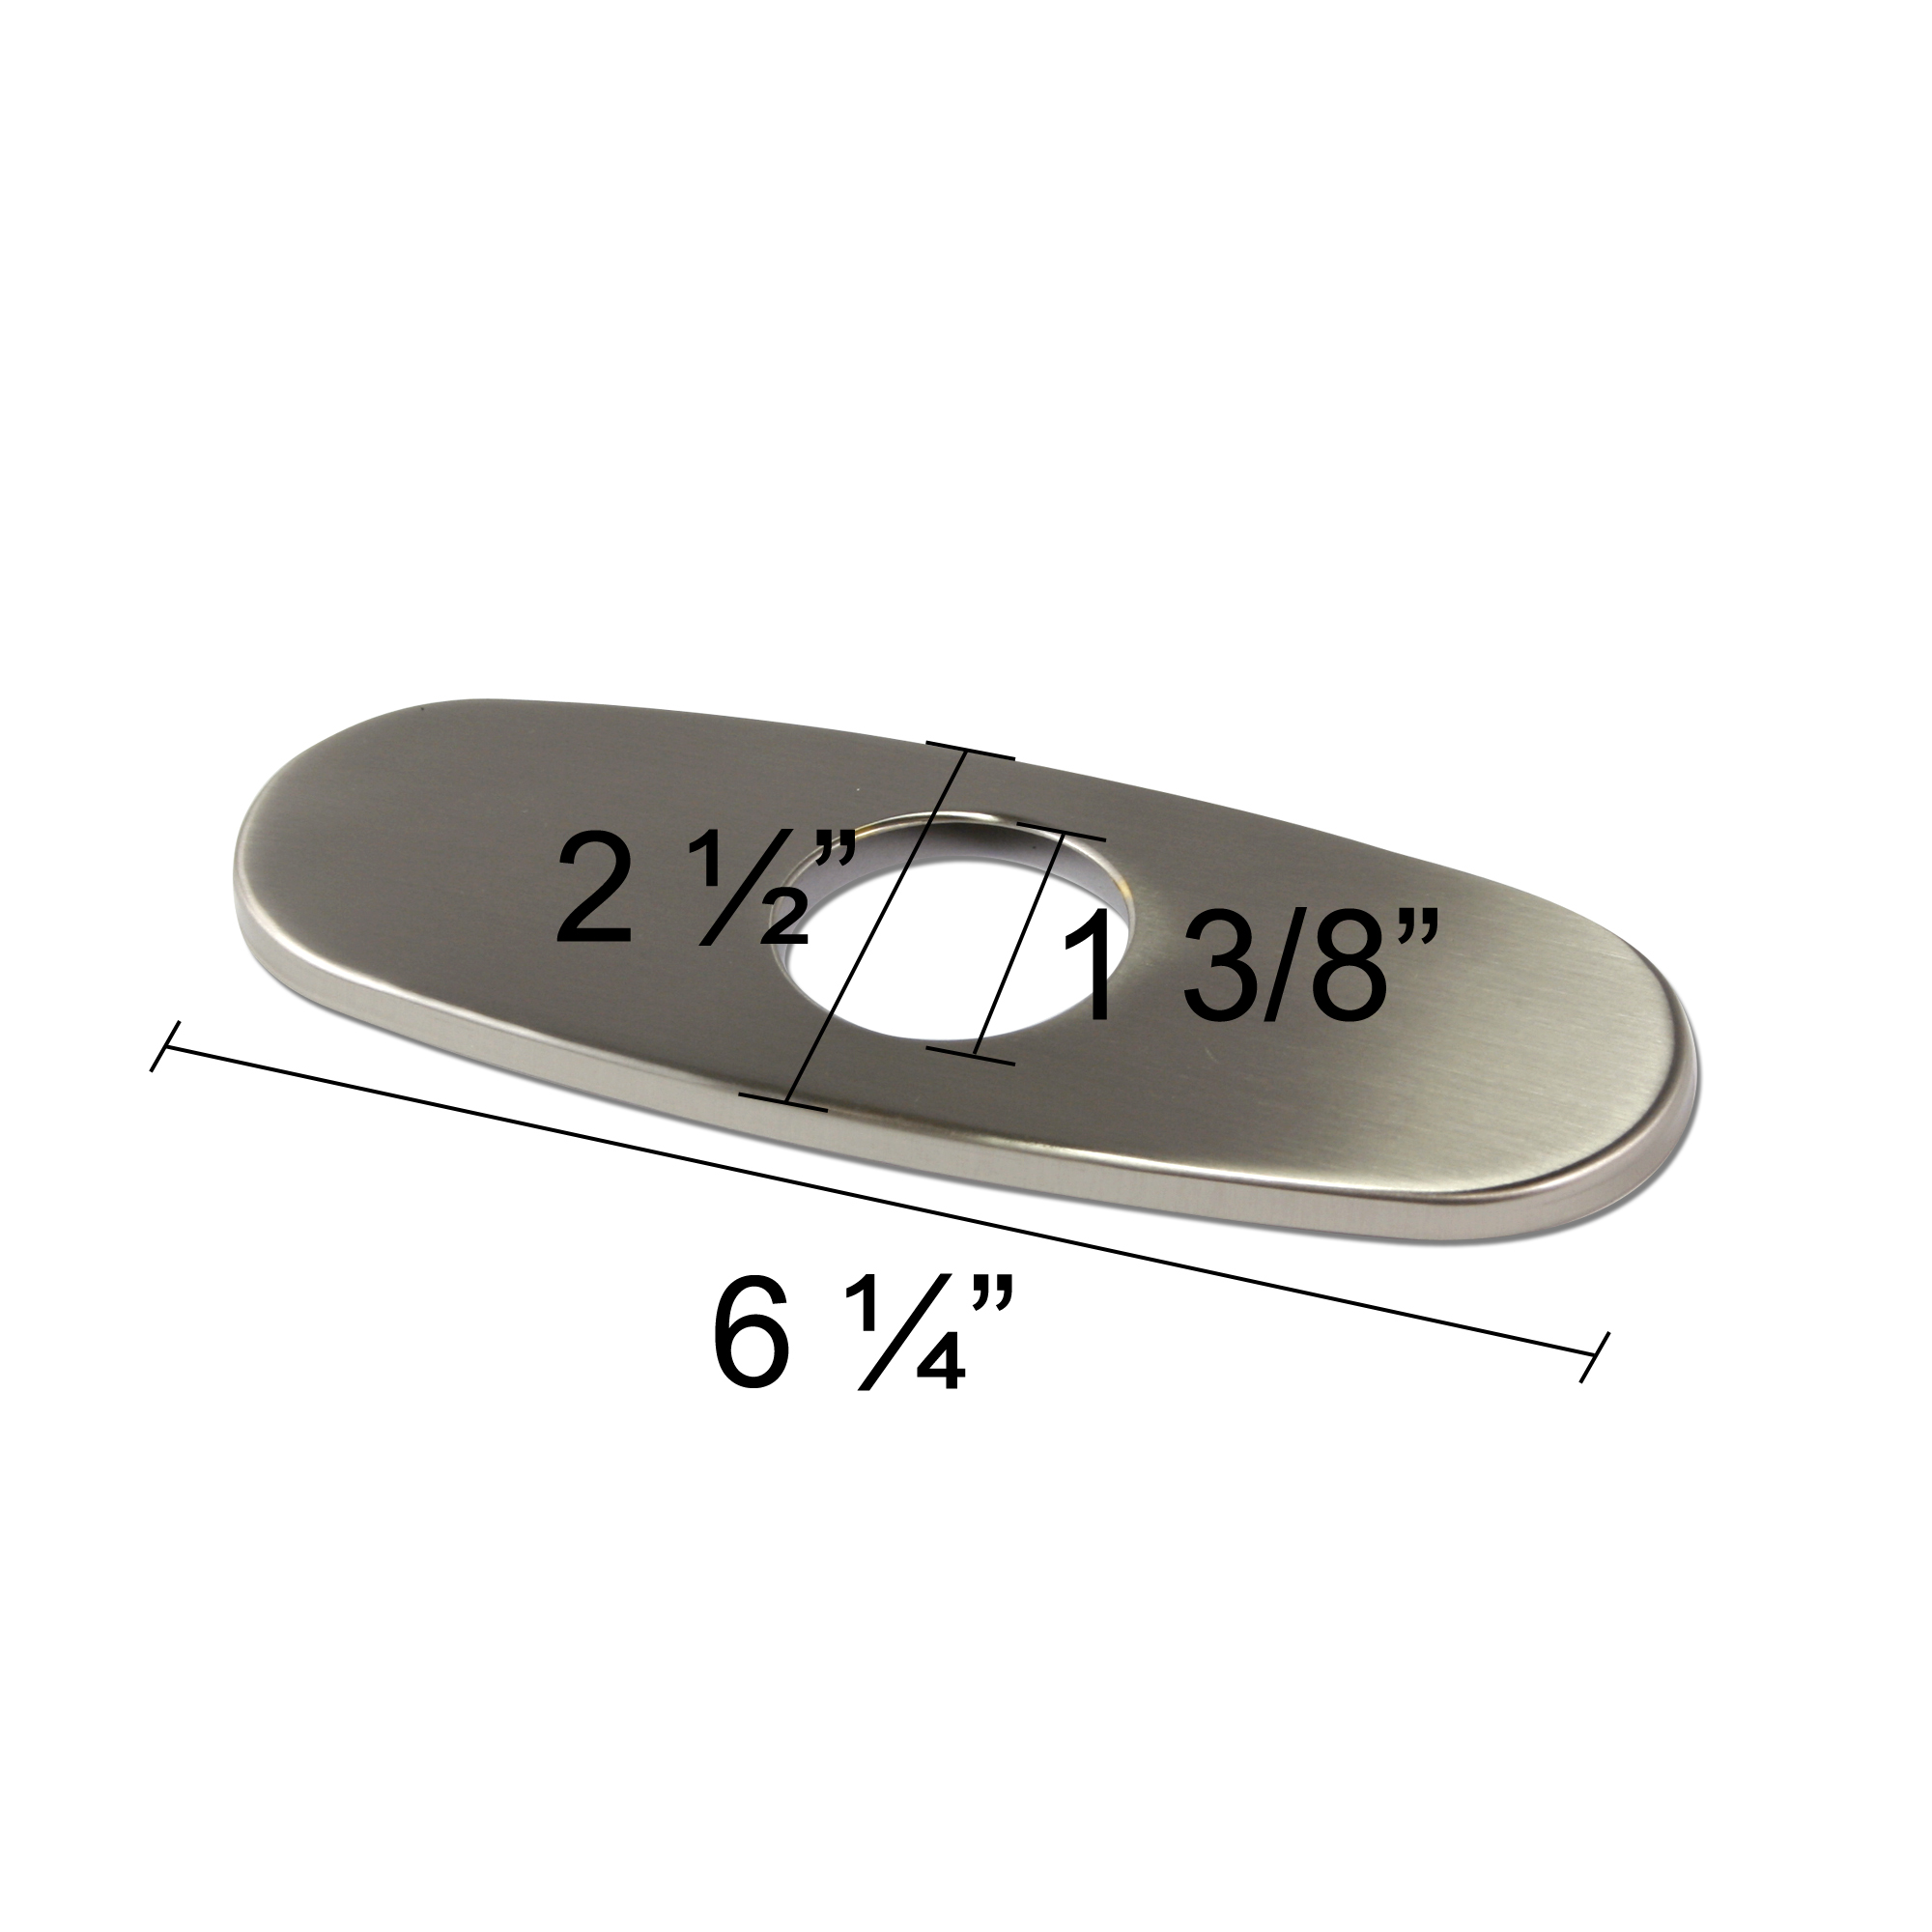 Deck plate cover